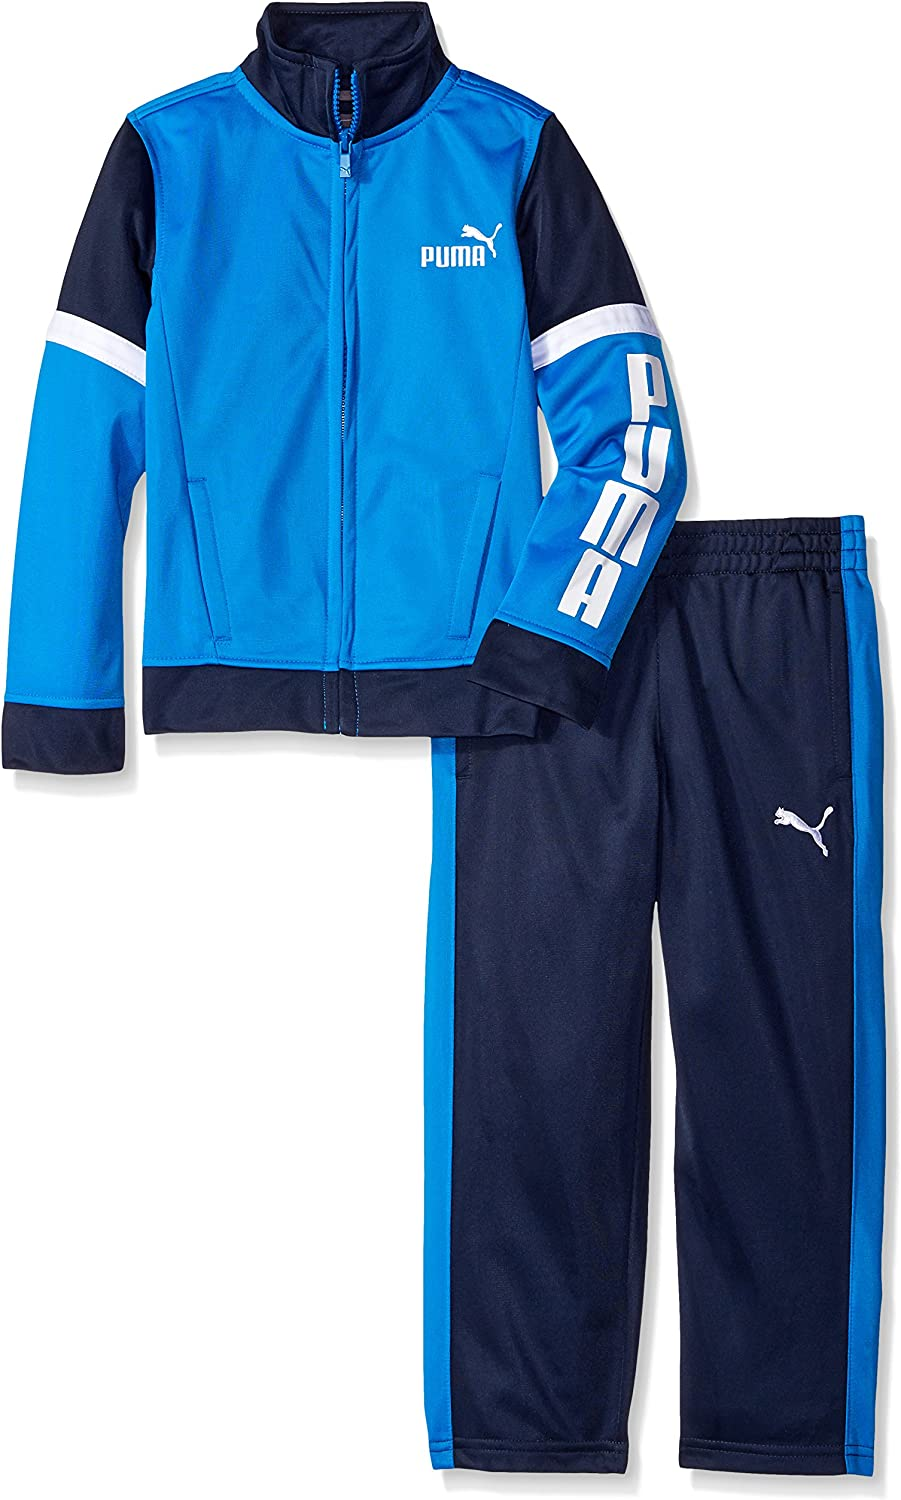 PUMA Little Boys' Toddler Tricot Jacket and Pant Set, Blue Stripe, 2T: Clothing